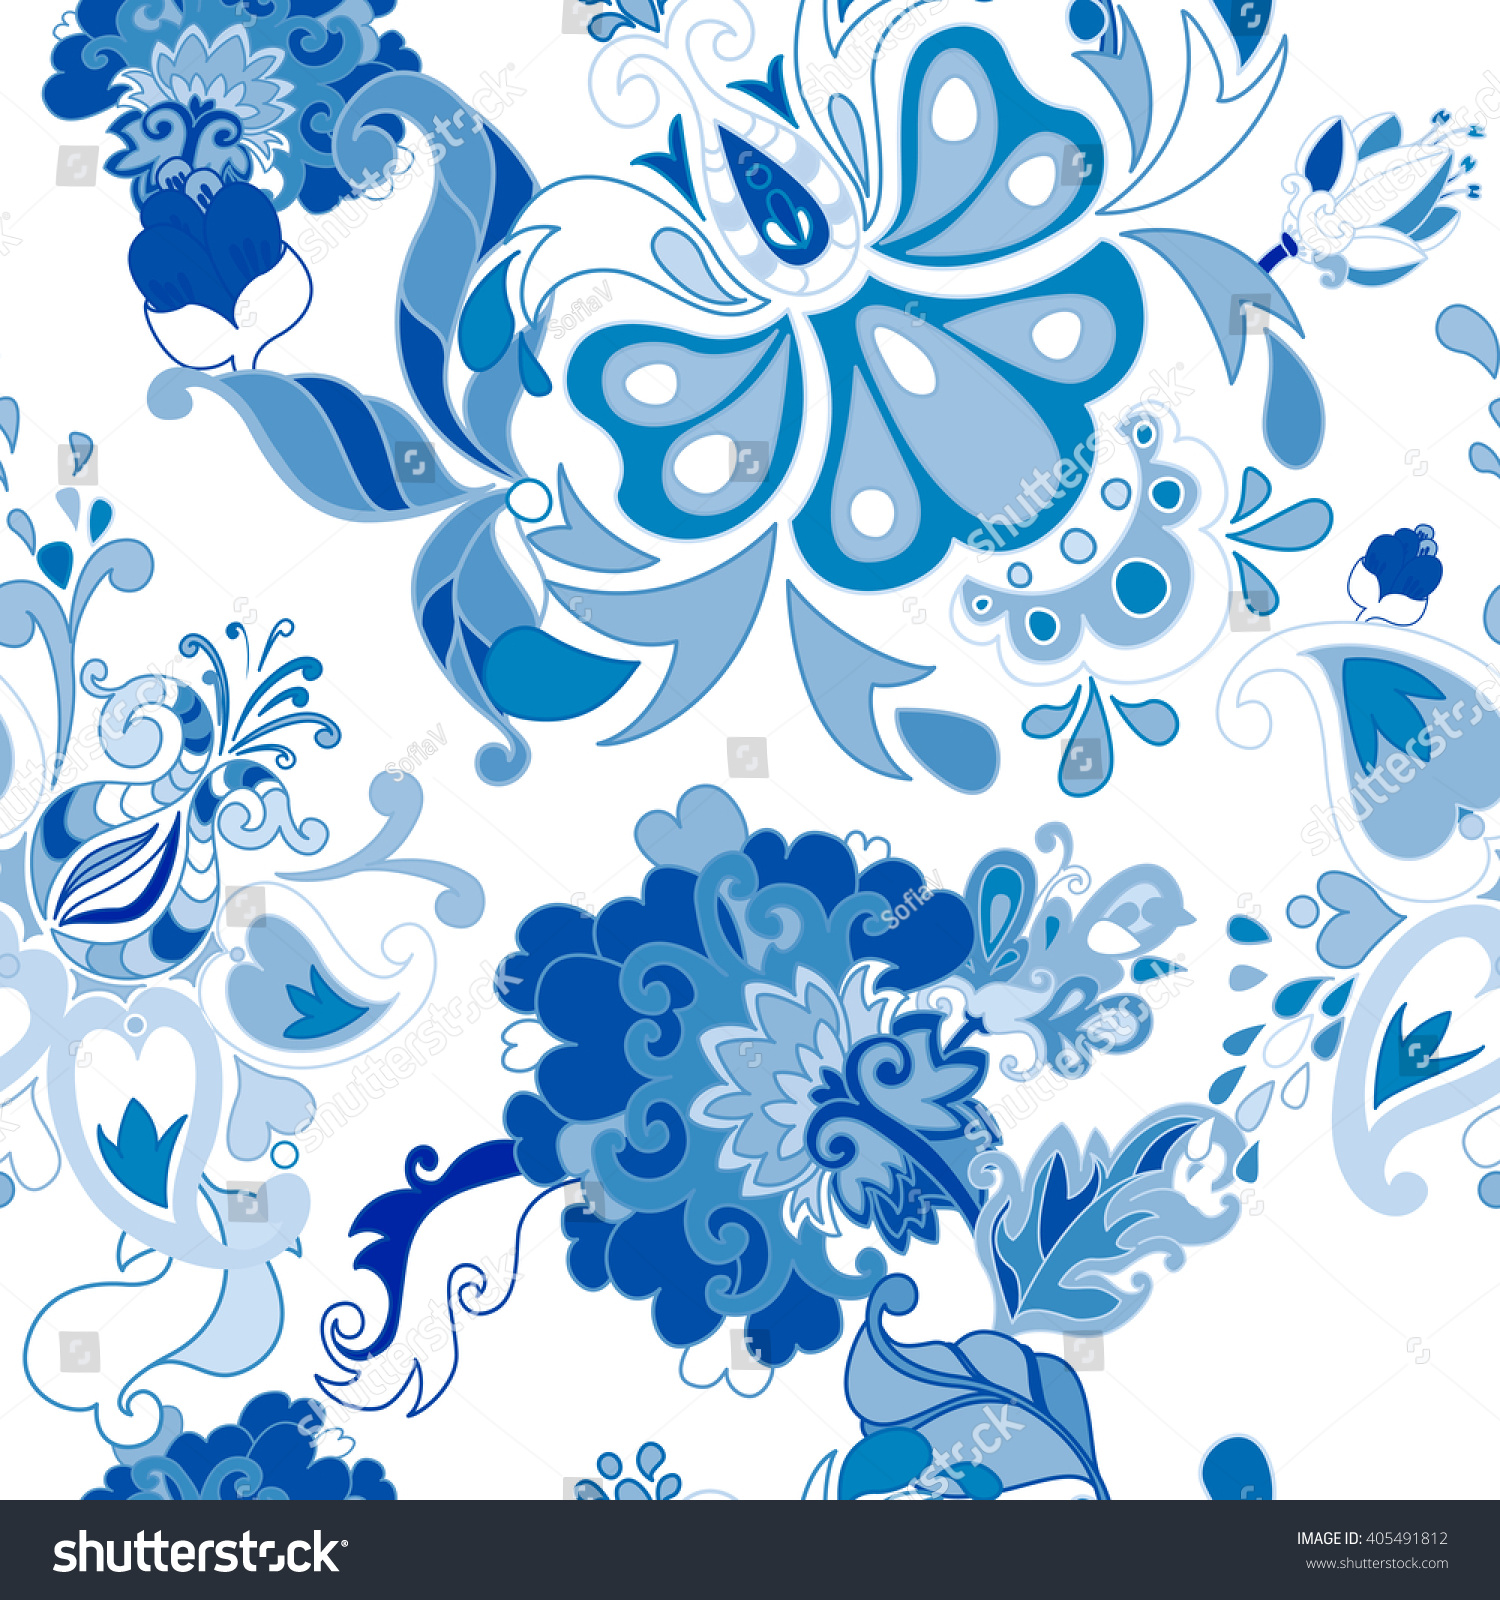 Blue Floral Seamless Background Pattern Wallpaper With Flowers Paisley Traditional Oriental